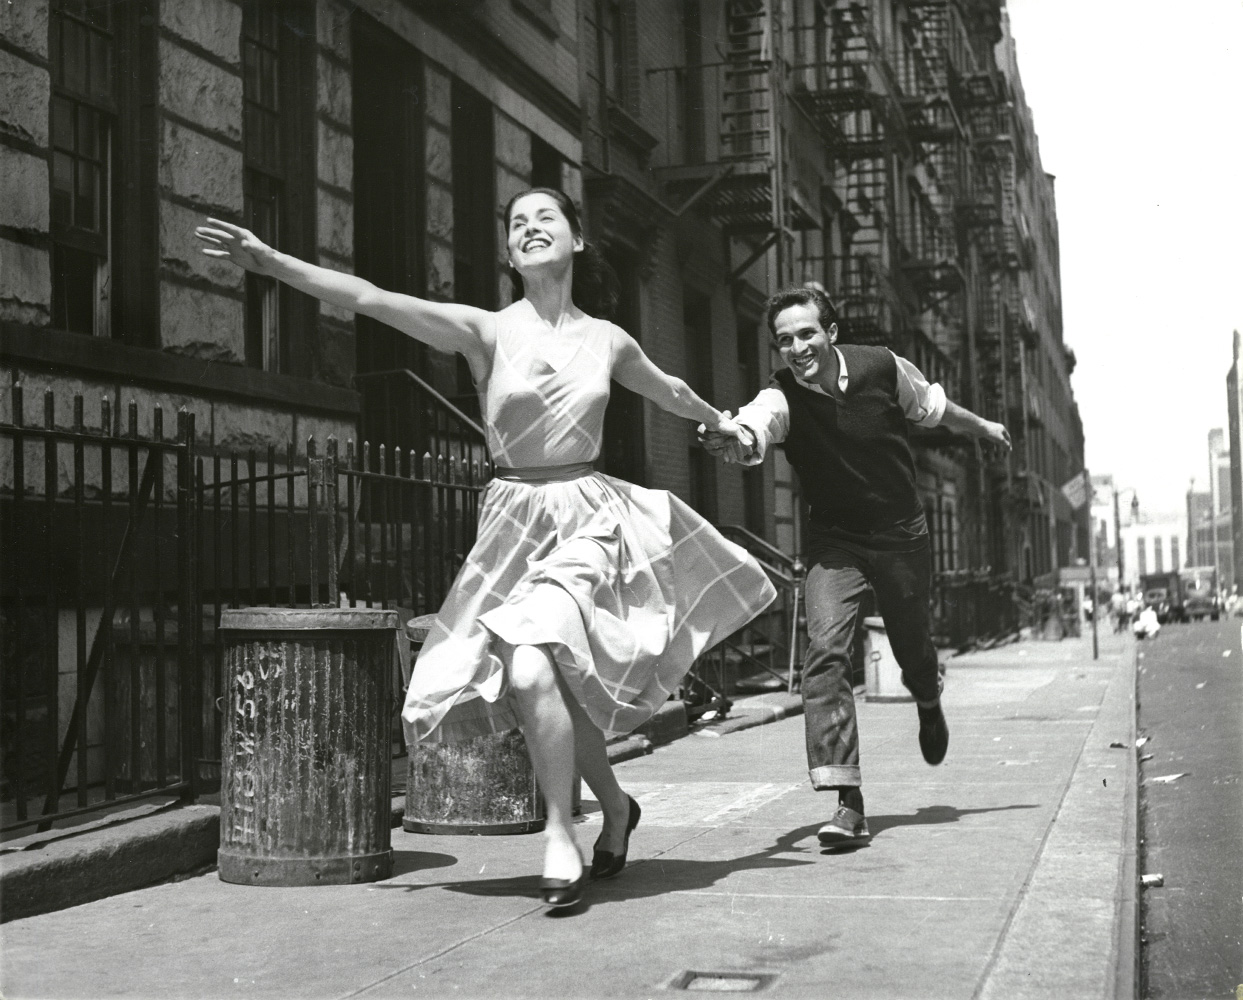 Leo Friedman's image of Carol Lawrence and Larry Kert in a stage photograph for the original broadway production of West Side Story in New York City, 1957.